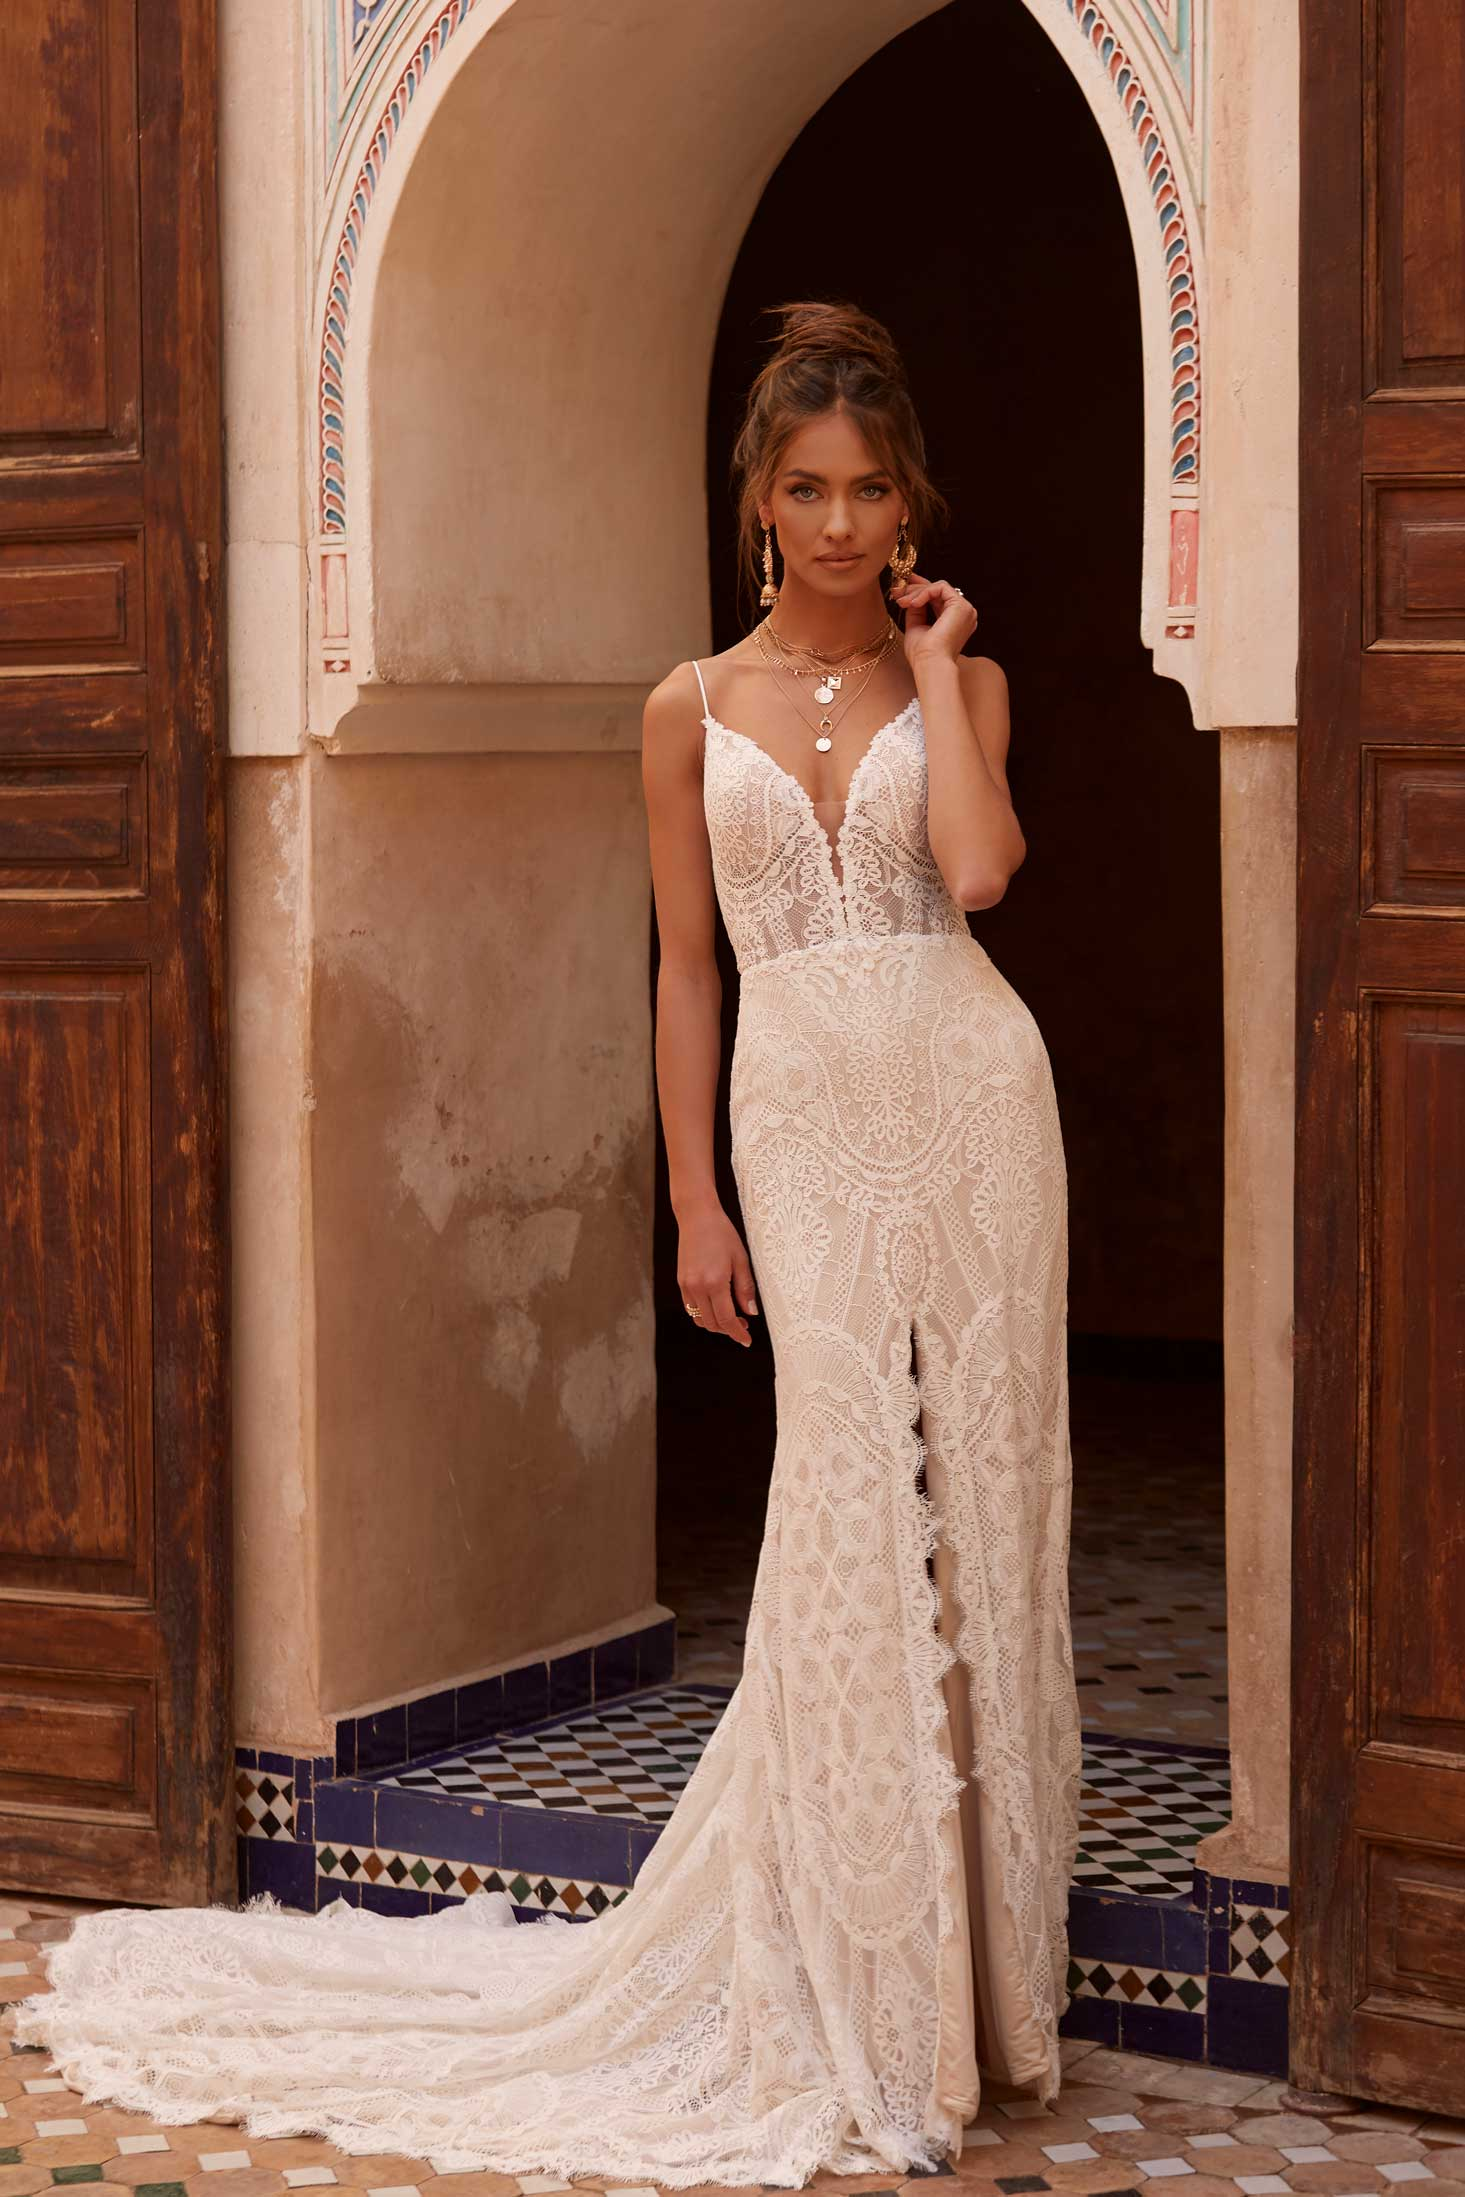 ARYN-ML17474-FULL-LACE-FITTED-GOWN-WITH-PLUNGING-V-NECKLINE-LACE-STRAPS-ZIP-UP-BACK-AND-CENTER-FRONT-SPLIT-WEDDING-DRESS-MADI-LANE-BRIDAL1